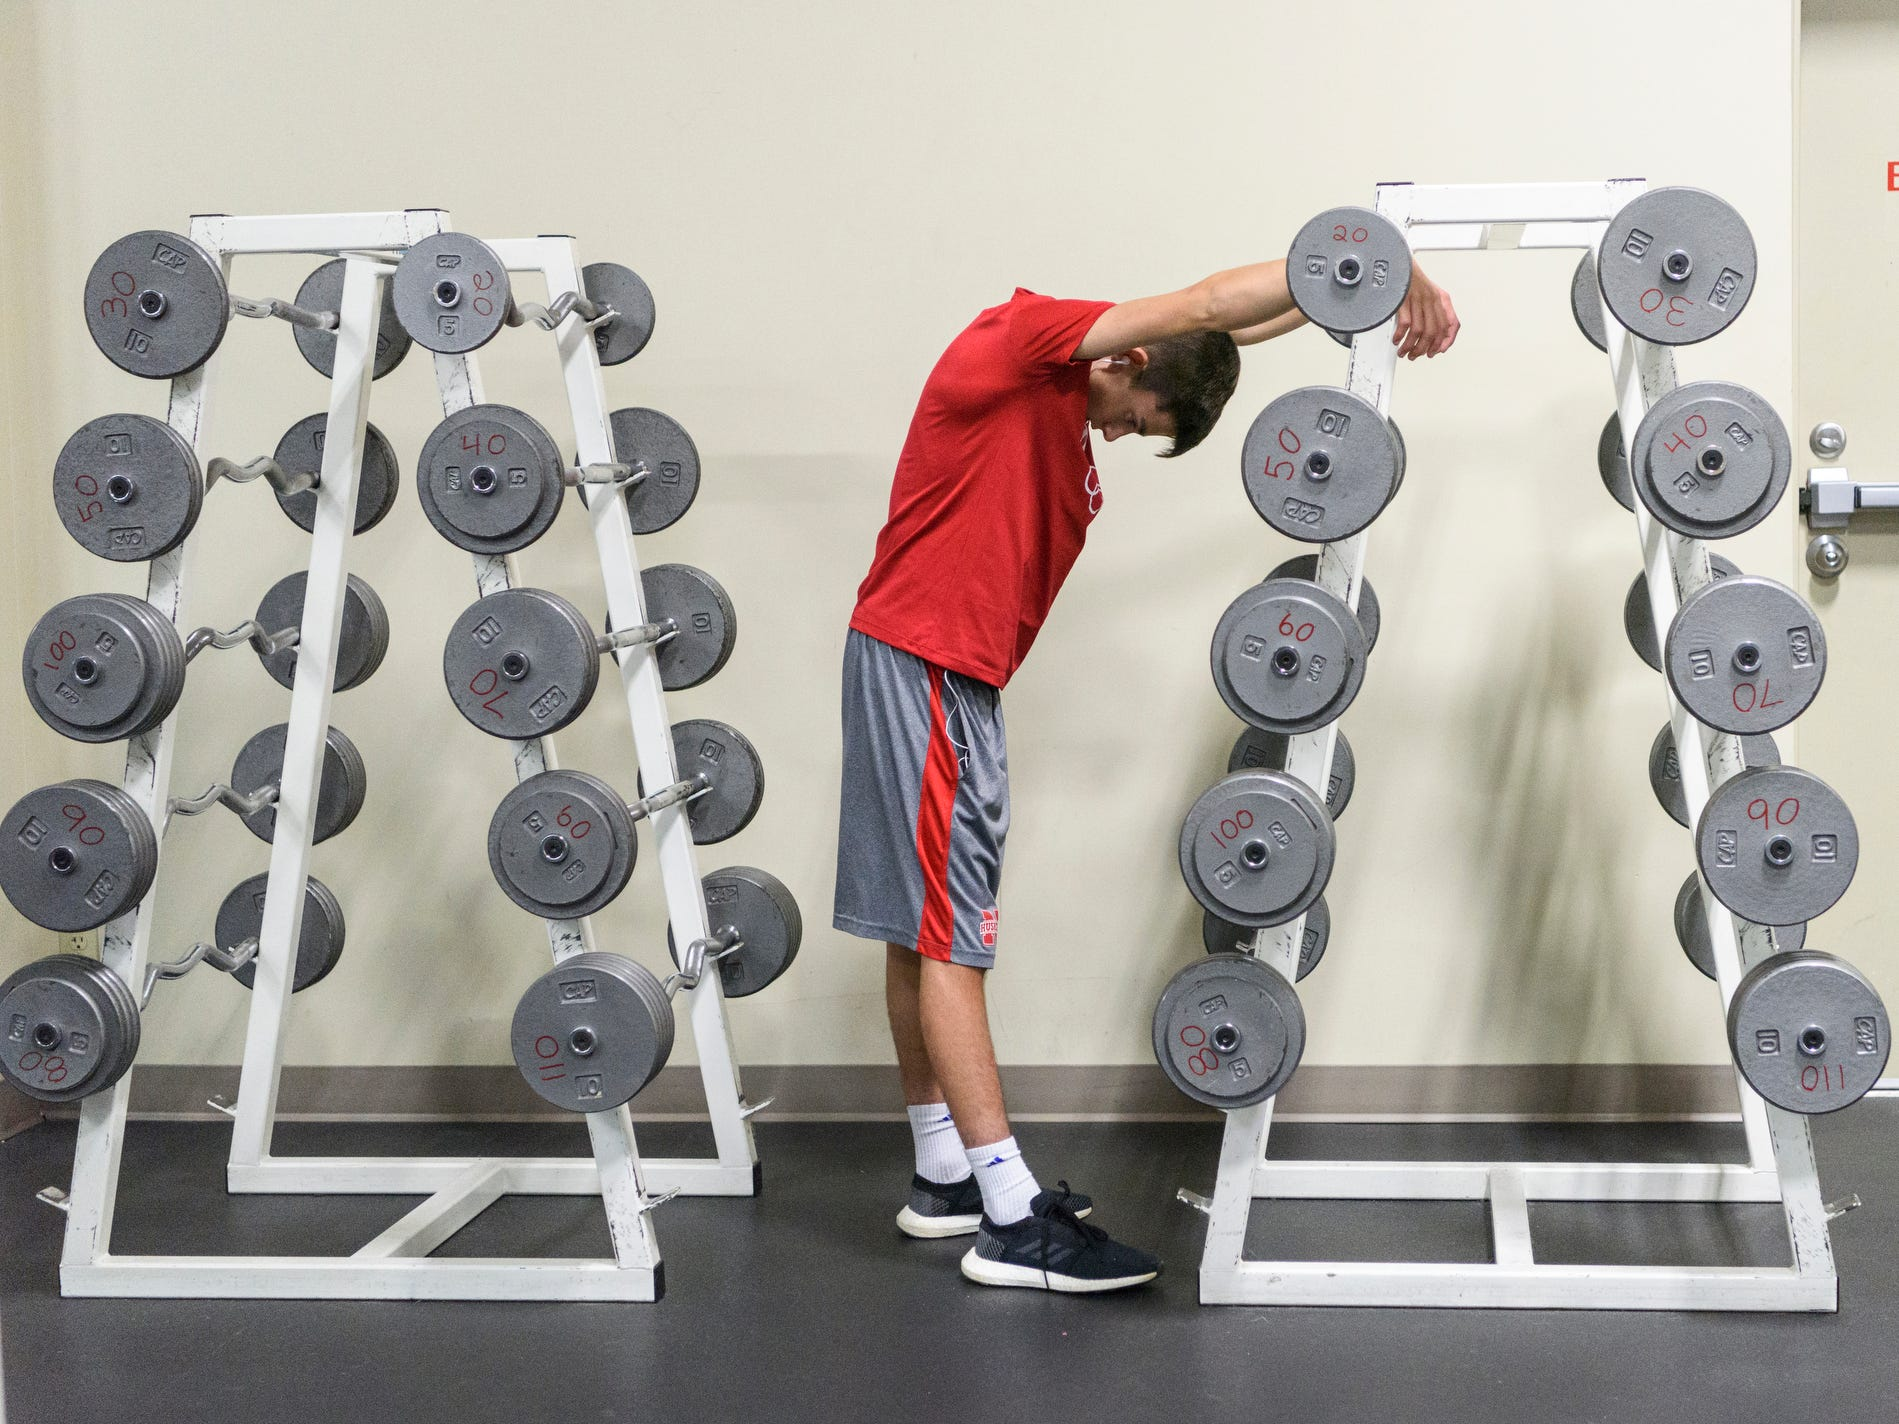 Sam Archuleta takes a moment to catch his breath and stretch during a workout at Elite Fitness in Evansville, Ind., Thursday evening, Oct. 11, 2018.